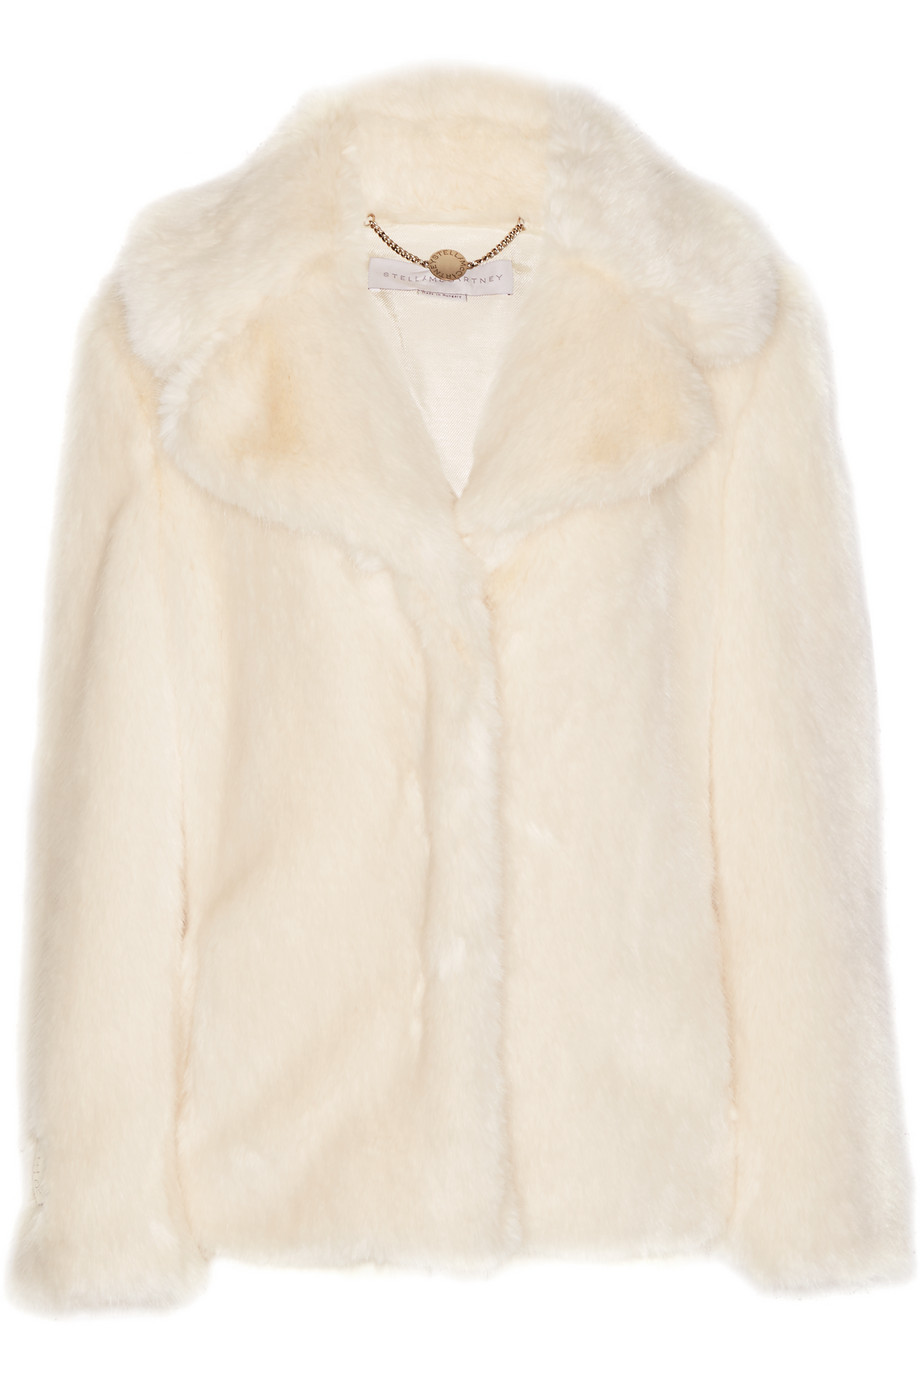 Stella Mccartney Faux Fur Coat, Cream, Women's, Size: 42